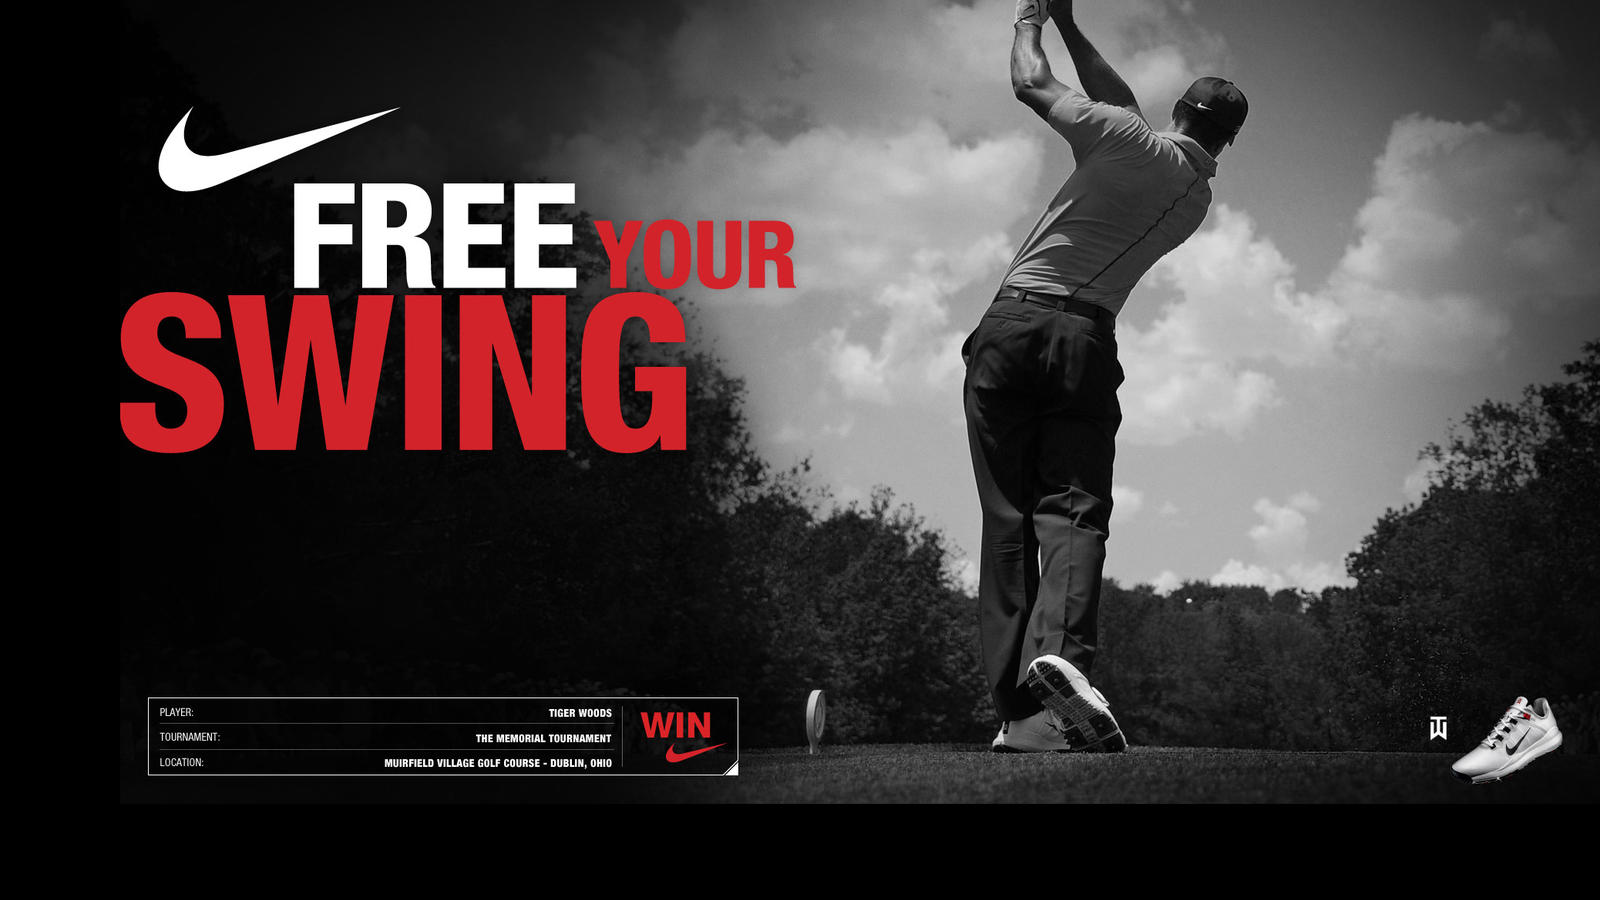 Nike Athlete Tiger Woods Secures his 73rd Win at The